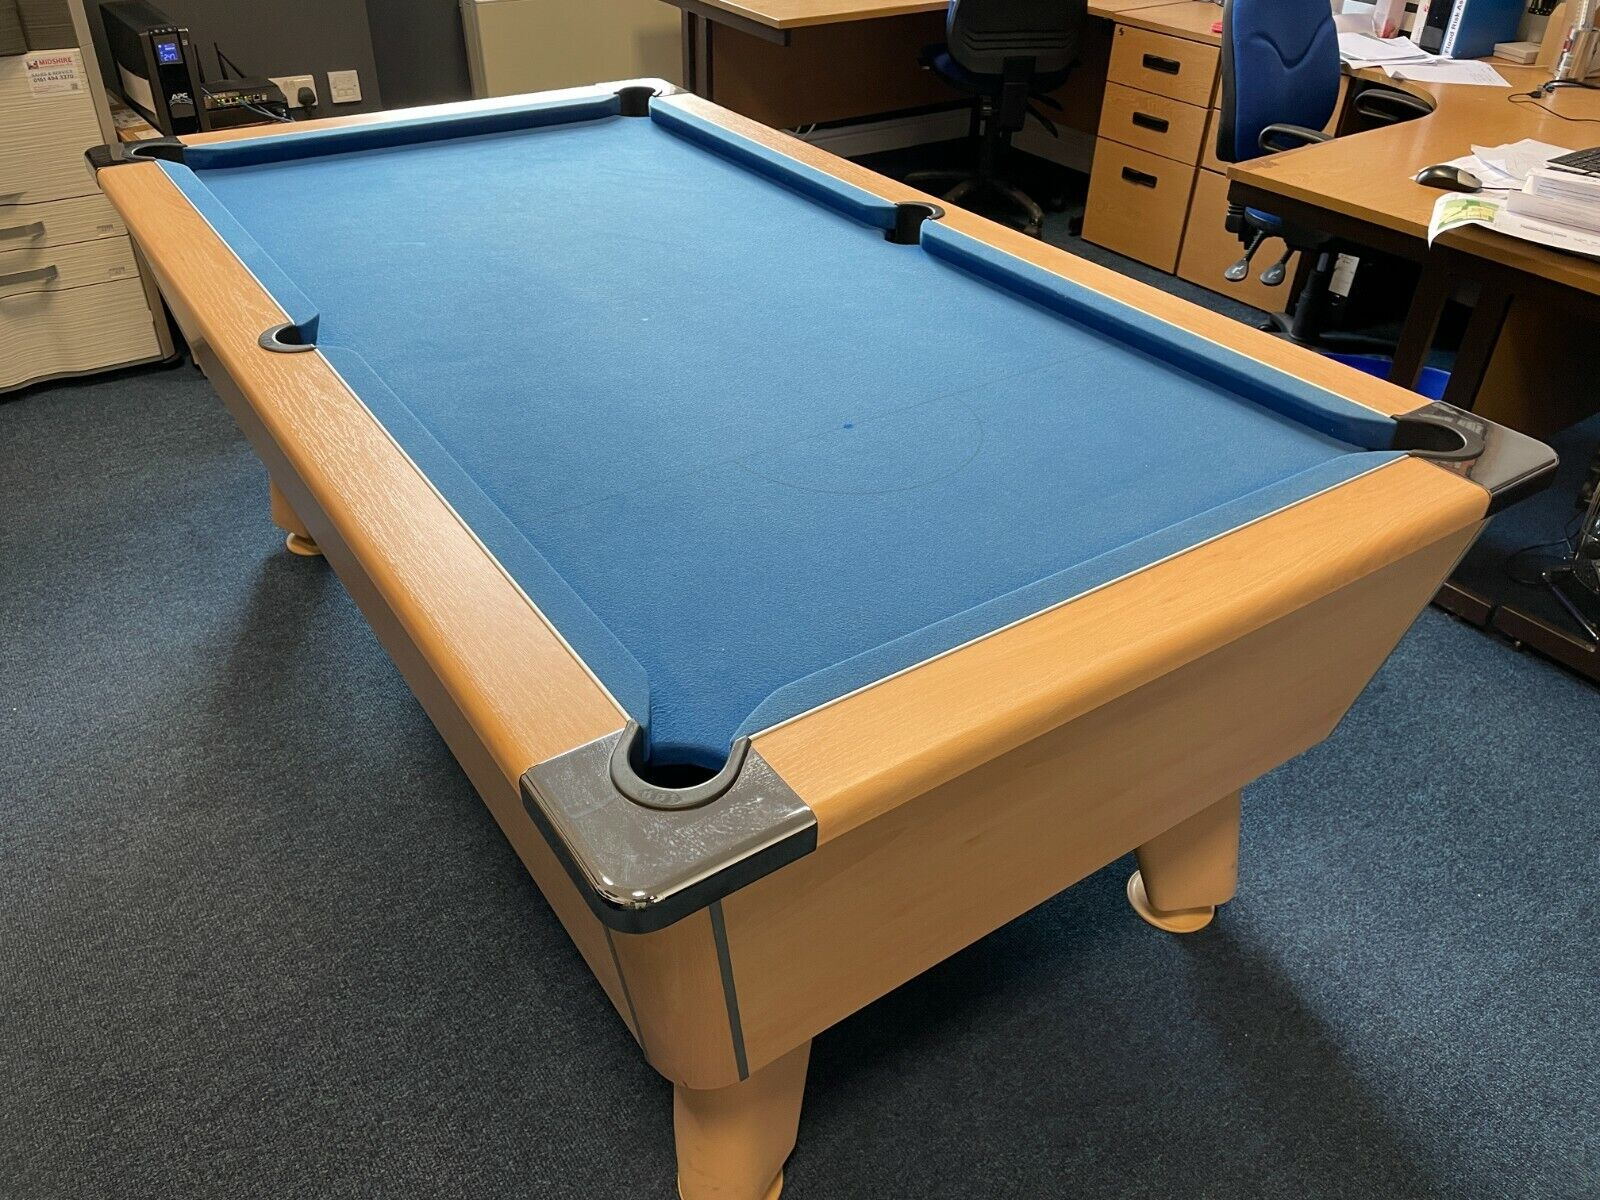 Pool Table 6ft Slate bed, with balls and Cues